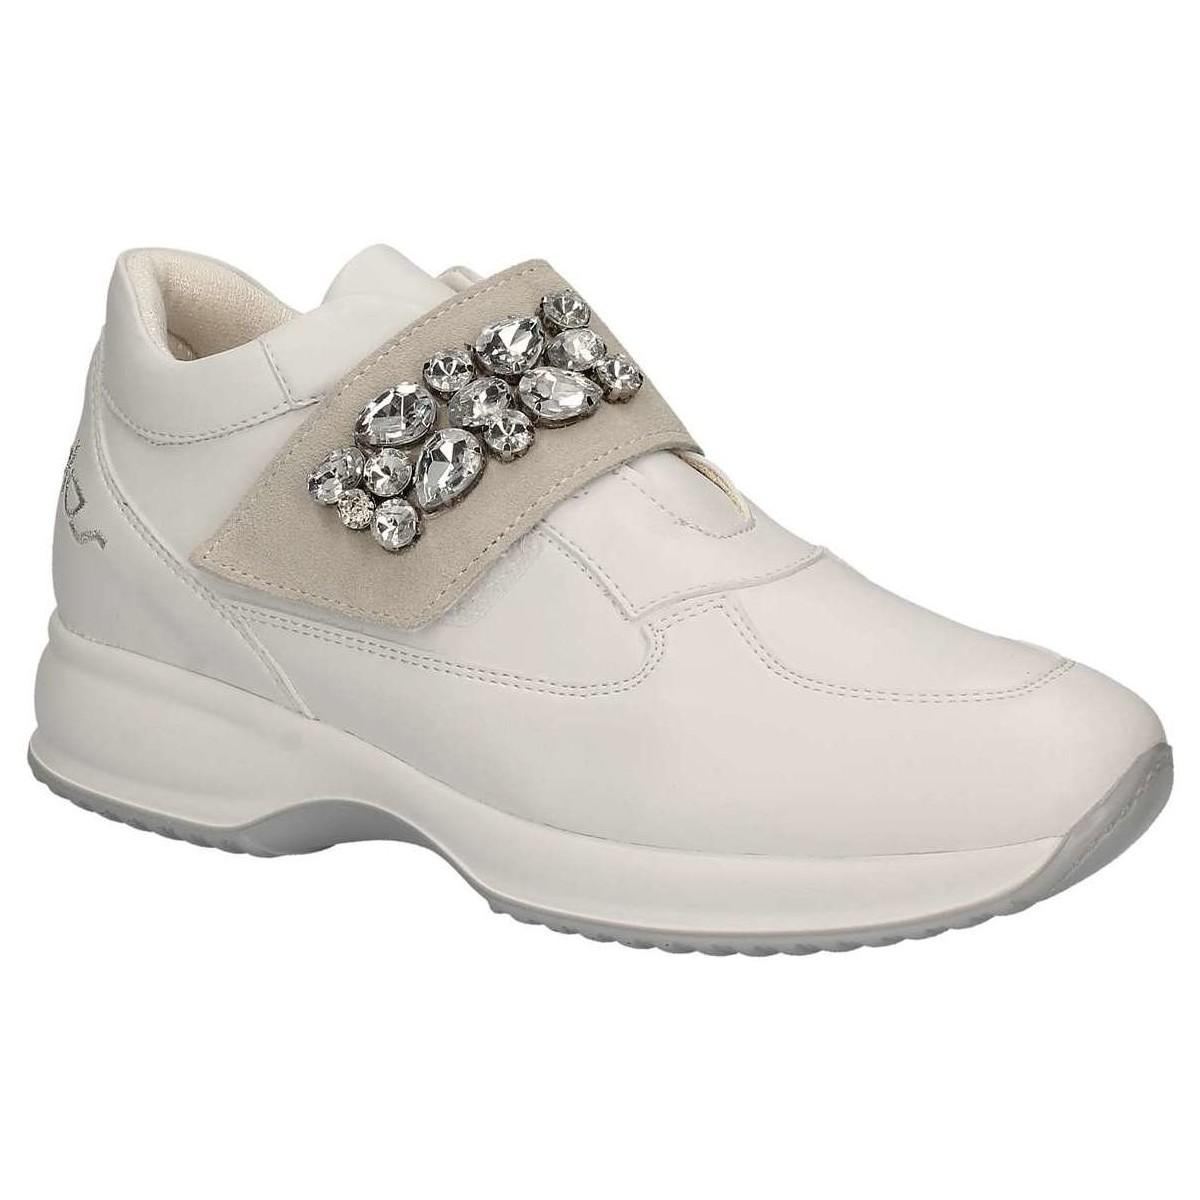 Deals Cheap Price Clearance Pay With Visa Byblos 672011 Sneakers Women women's Shoes (Trainers) in Cheap Sale Nicekicks Finishline 6Vyxr2l